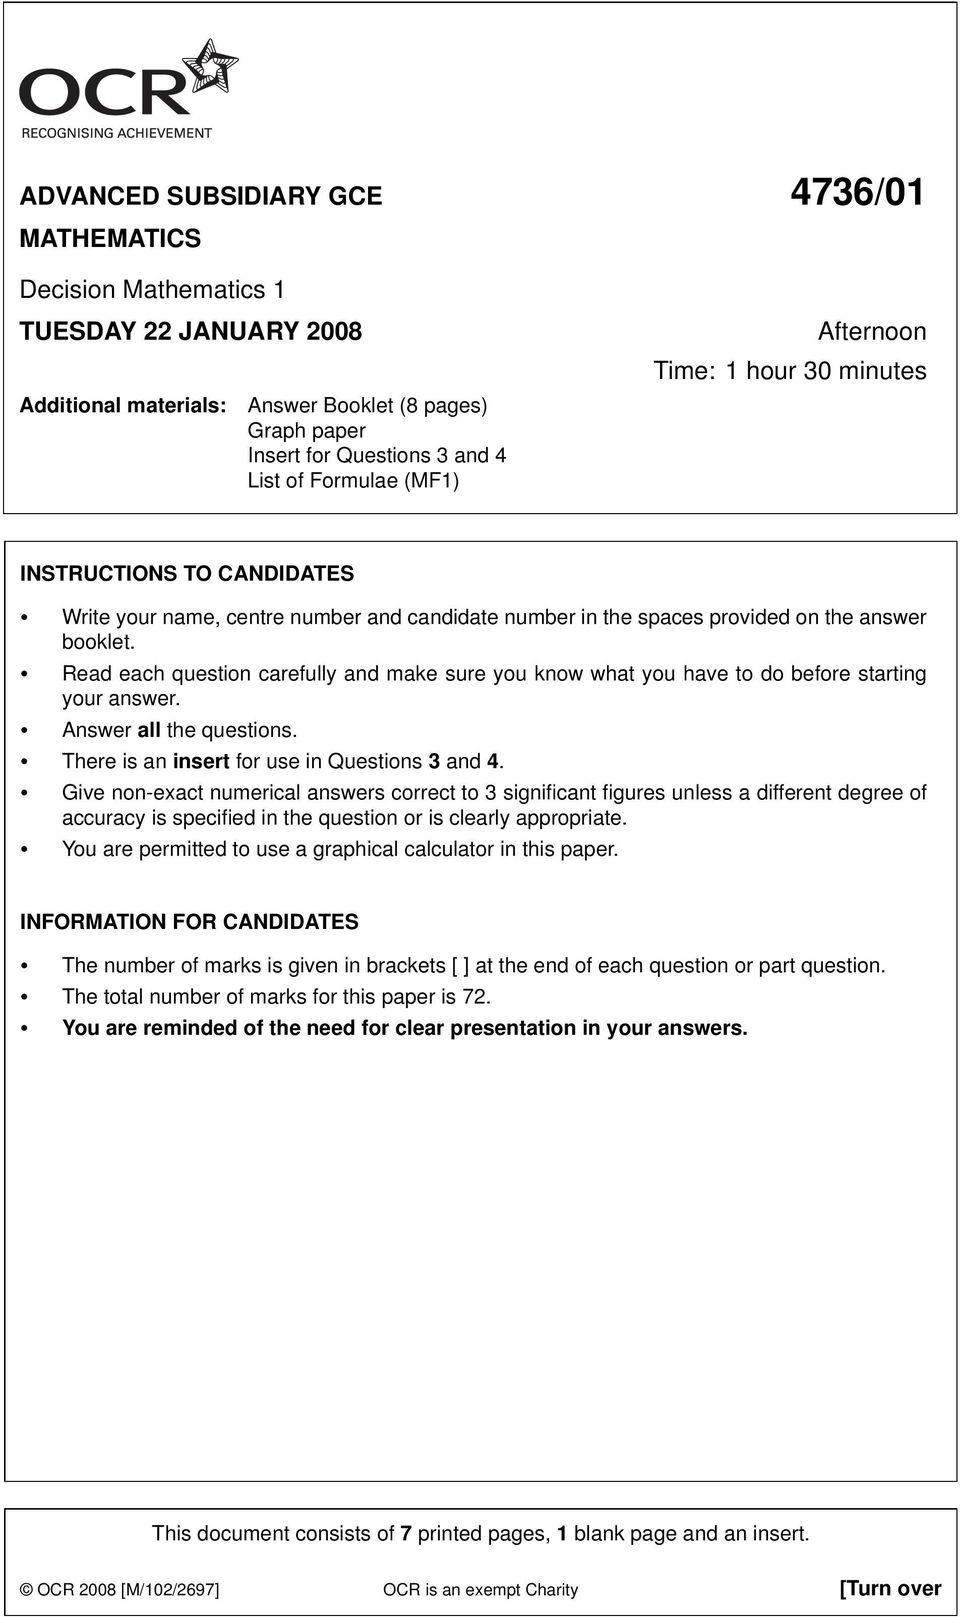 Read each question carefully and make sure you know what you have to do before starting your answer. Answer all the questions. There is an insert for use in Questions 3 and 4.